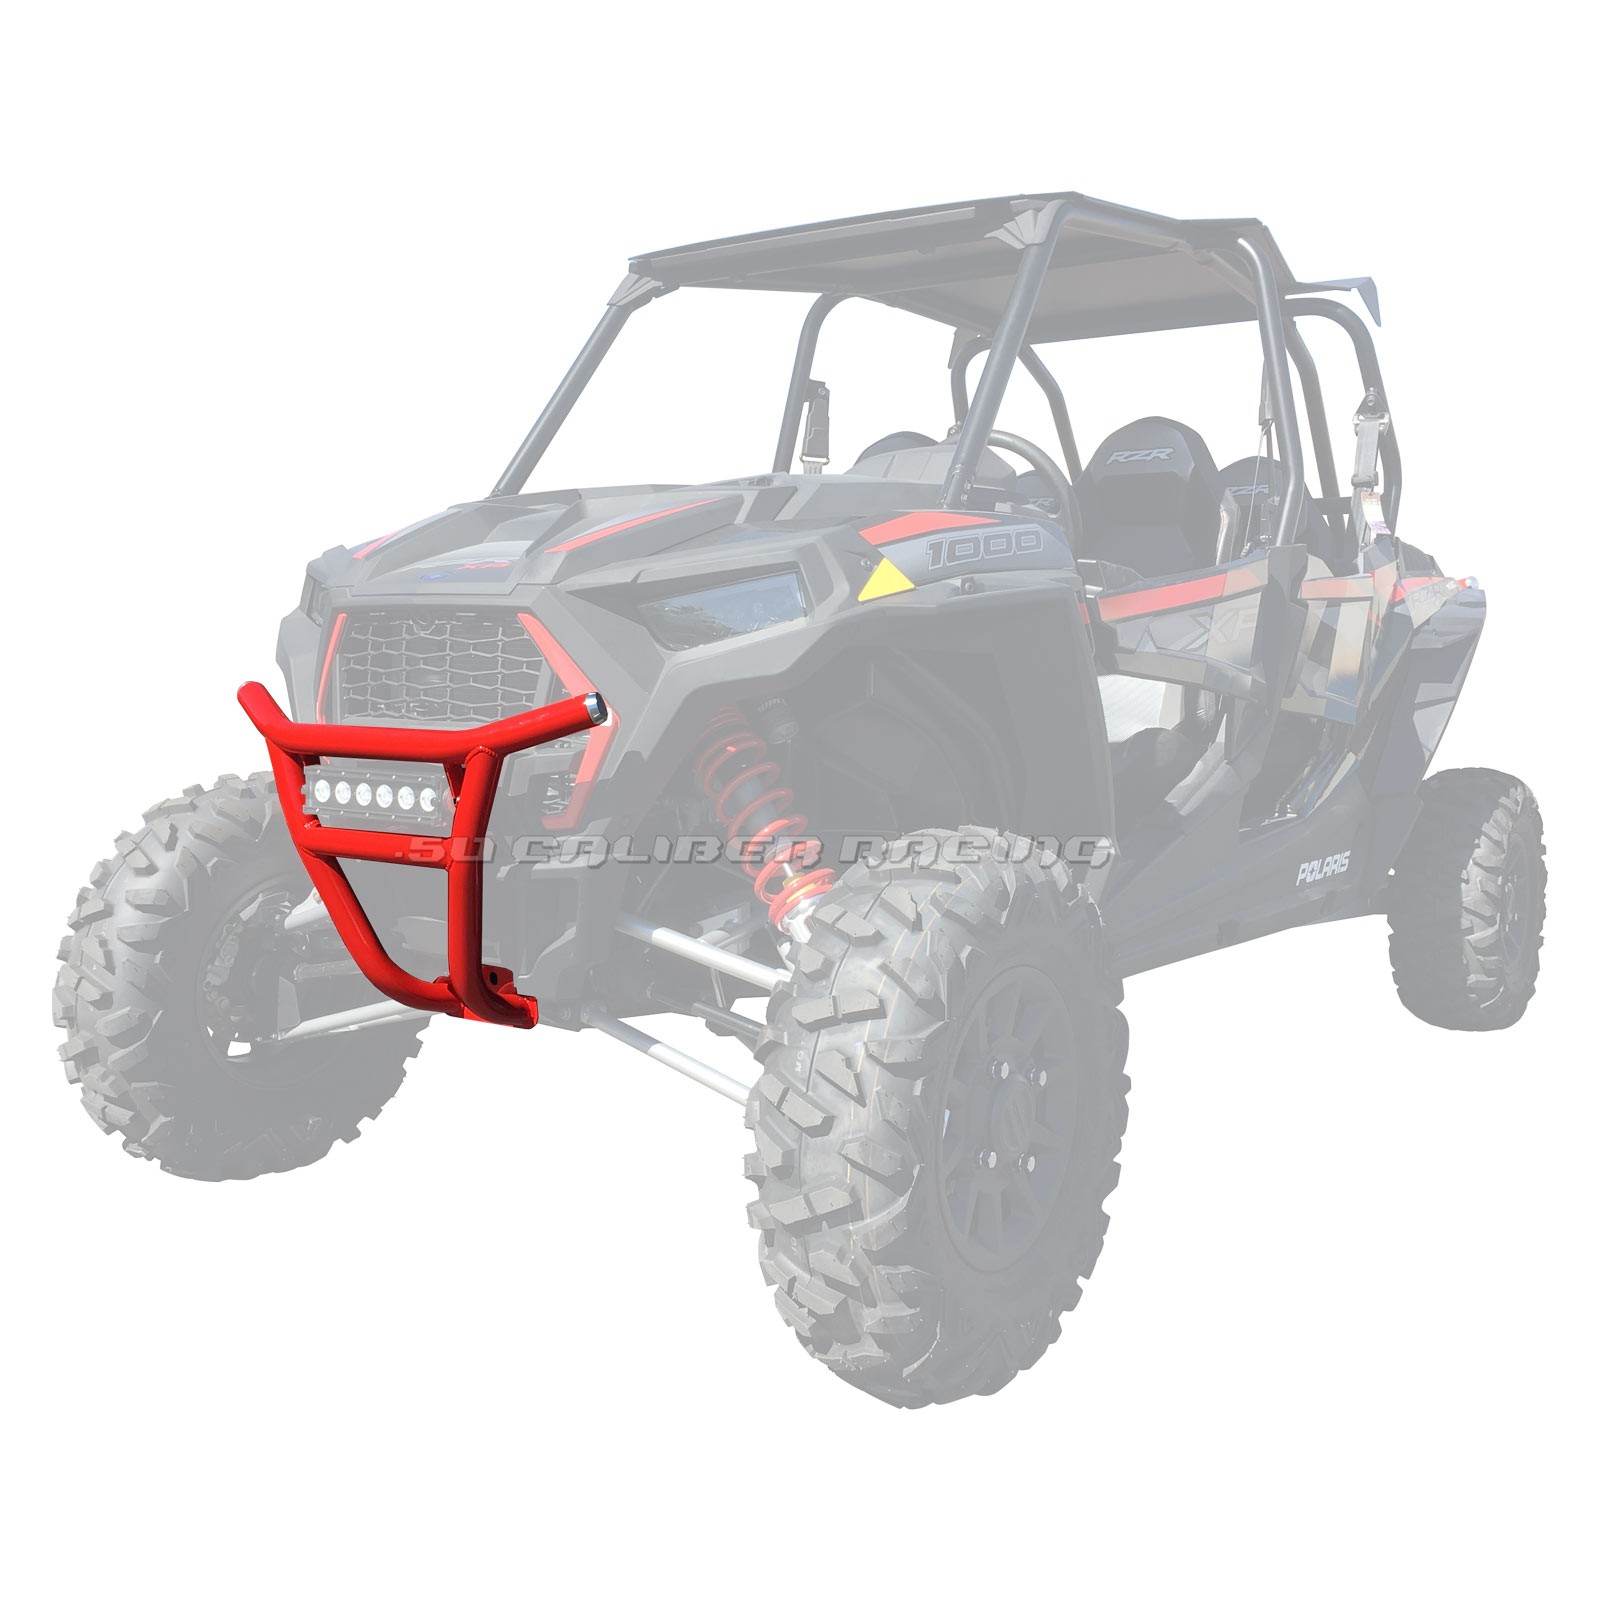 hight resolution of details about 50 caliber racing 2019 rzr xp1000 tubular front bumper red